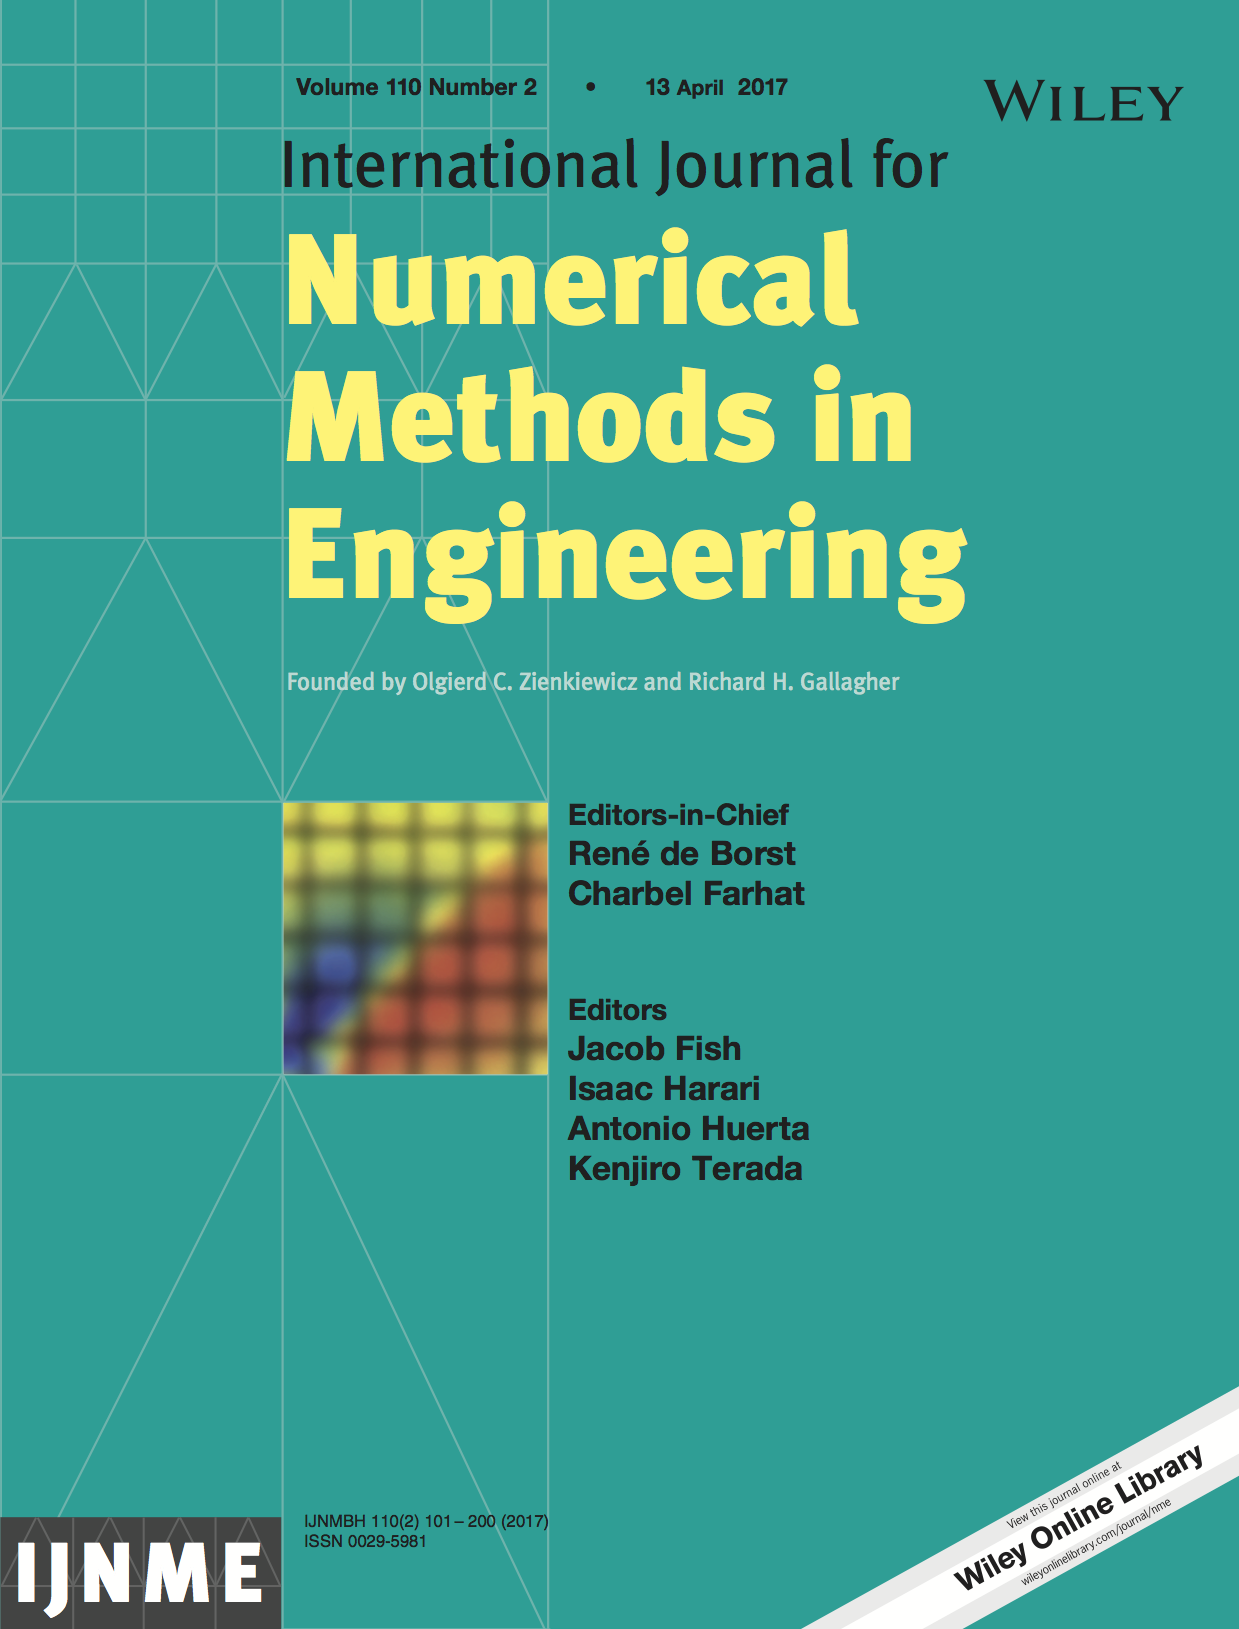 Template for submissions to International Journal for Numerical Methods in Engineering